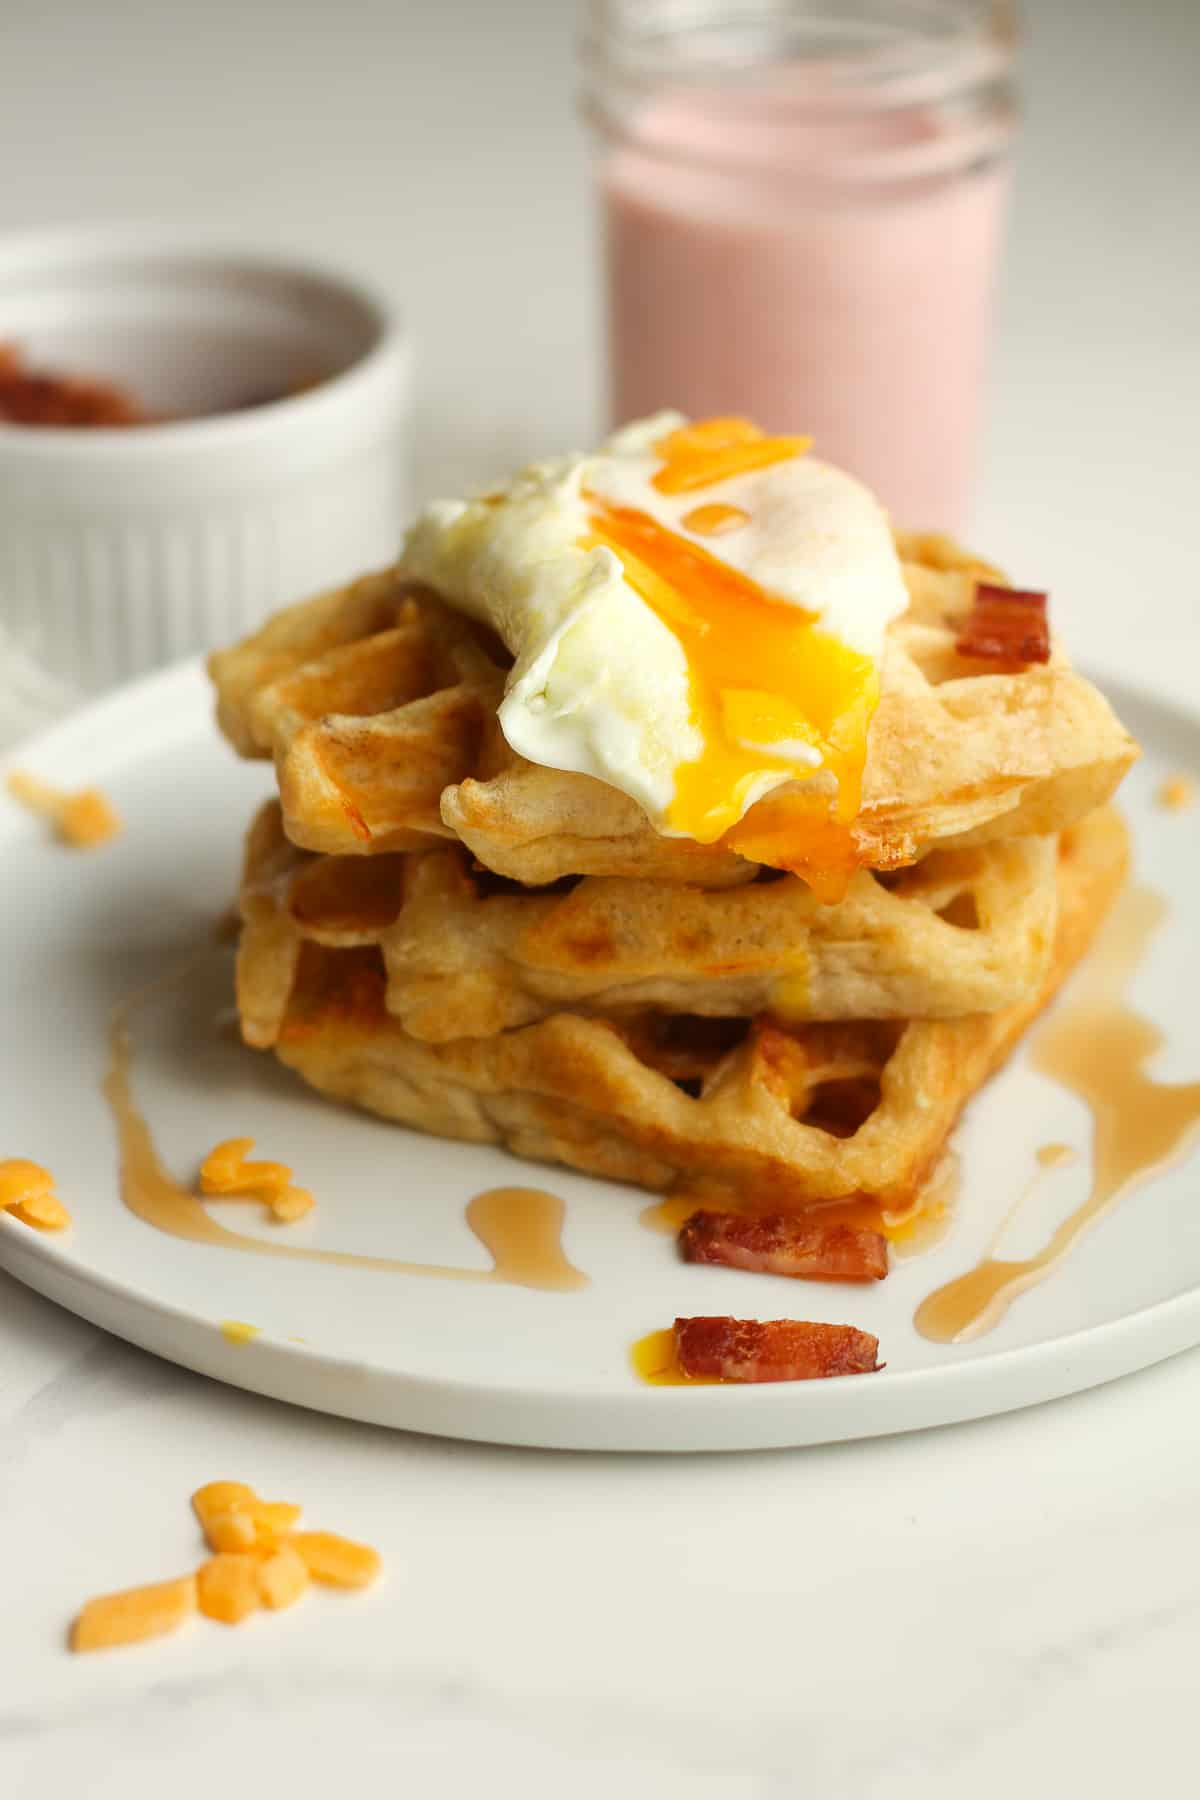 A stack of three waffles with a drippy egg on top.